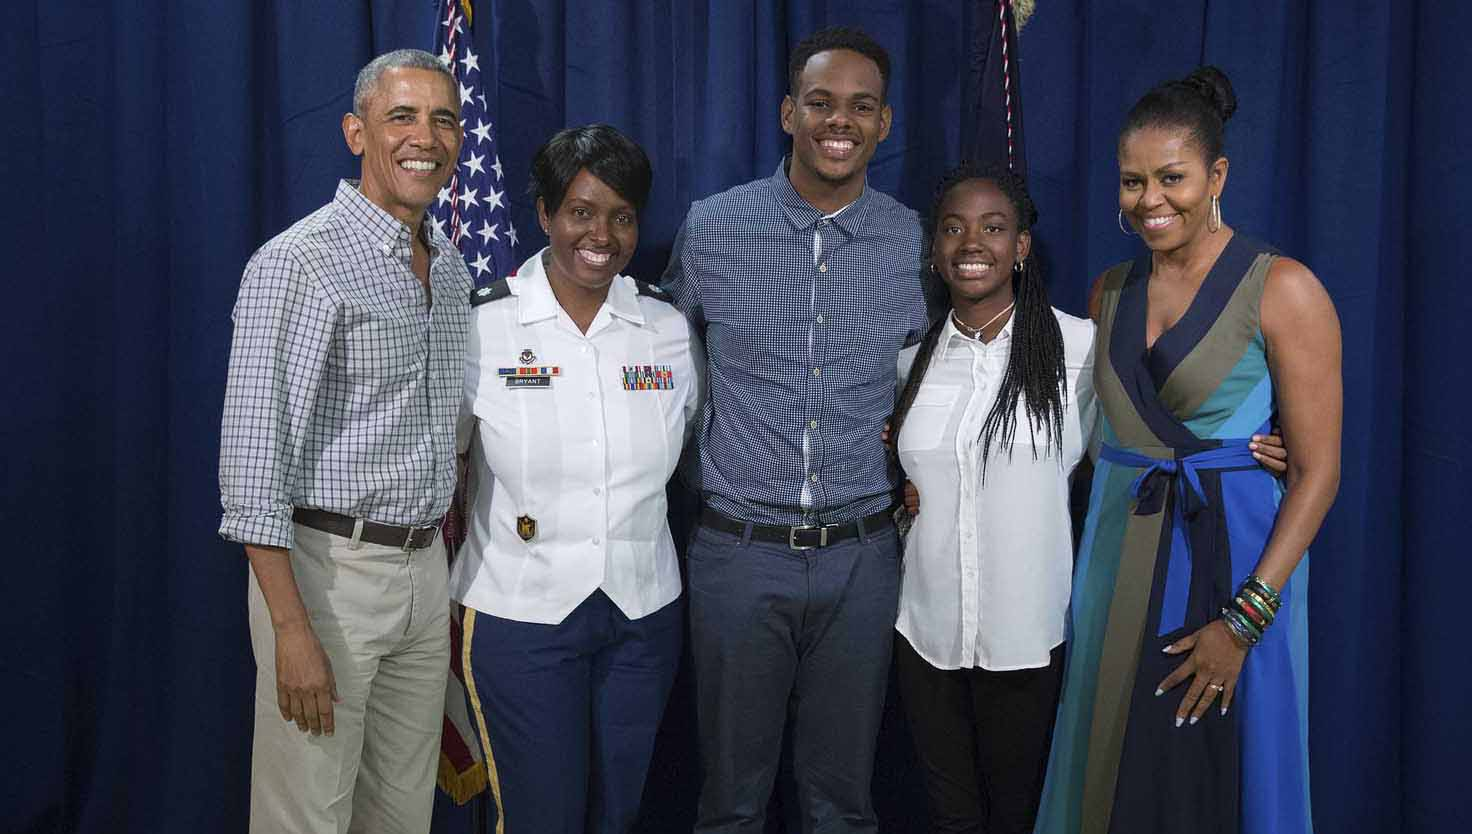 Brundidge native Lieutenant Colonel Letitia Bryant and her children were among 300 service members and their families who were selected to meet President Barak Obama and First Lady Michelle Obama on Christmas Day at Kaneohe Marine Corps Base in Hawaii. Pictured are President Obama, Lieutenant Colonel Letitia Bryant, Kendall Bryant, Kaelan Bryant and First Lady Michelle Obama. Inset below, Major Letitia Bryant with President Obama at Pentagon in January 2009. Photos courtesy White House Press Office.